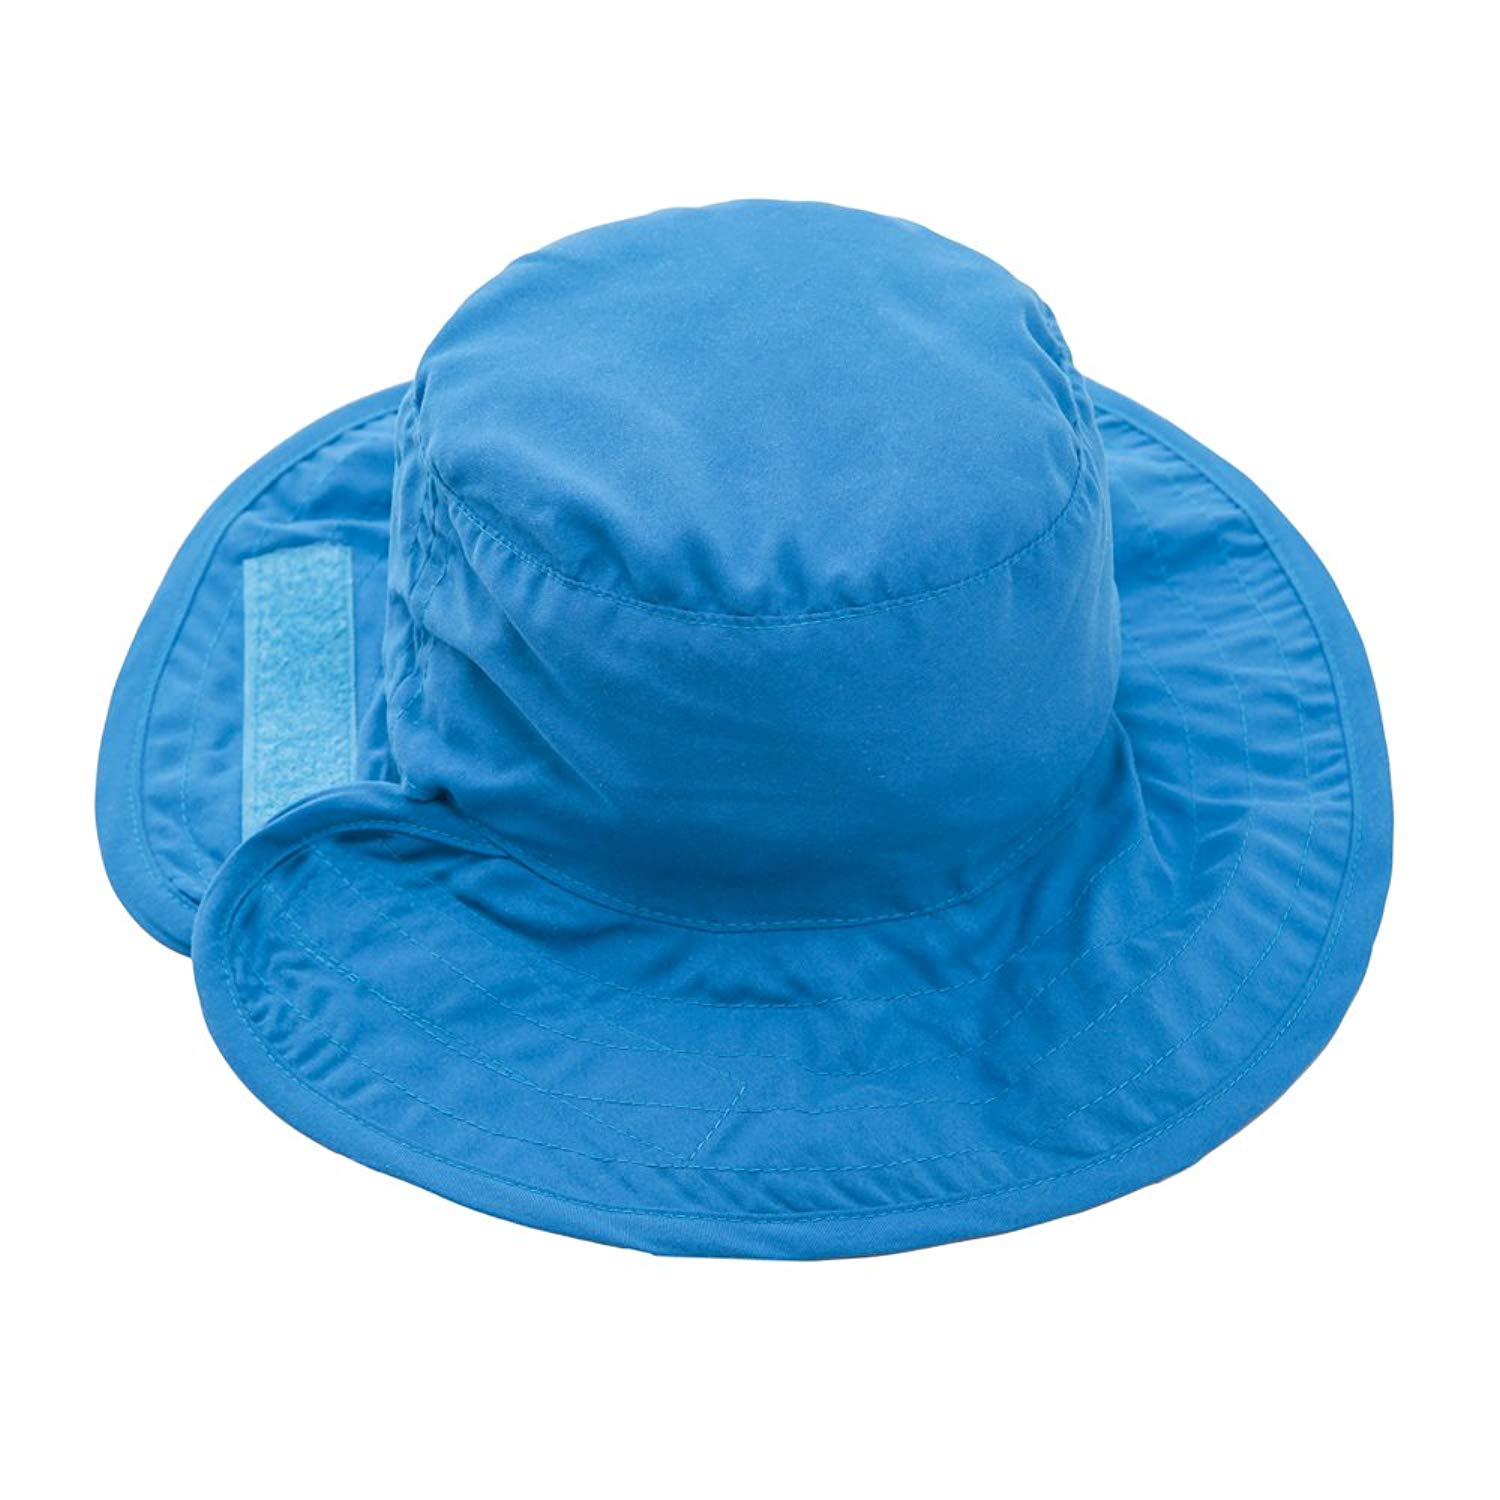 34c038c67 Baby Banz Hat Baby: Buy Online from Fishpond.com.au